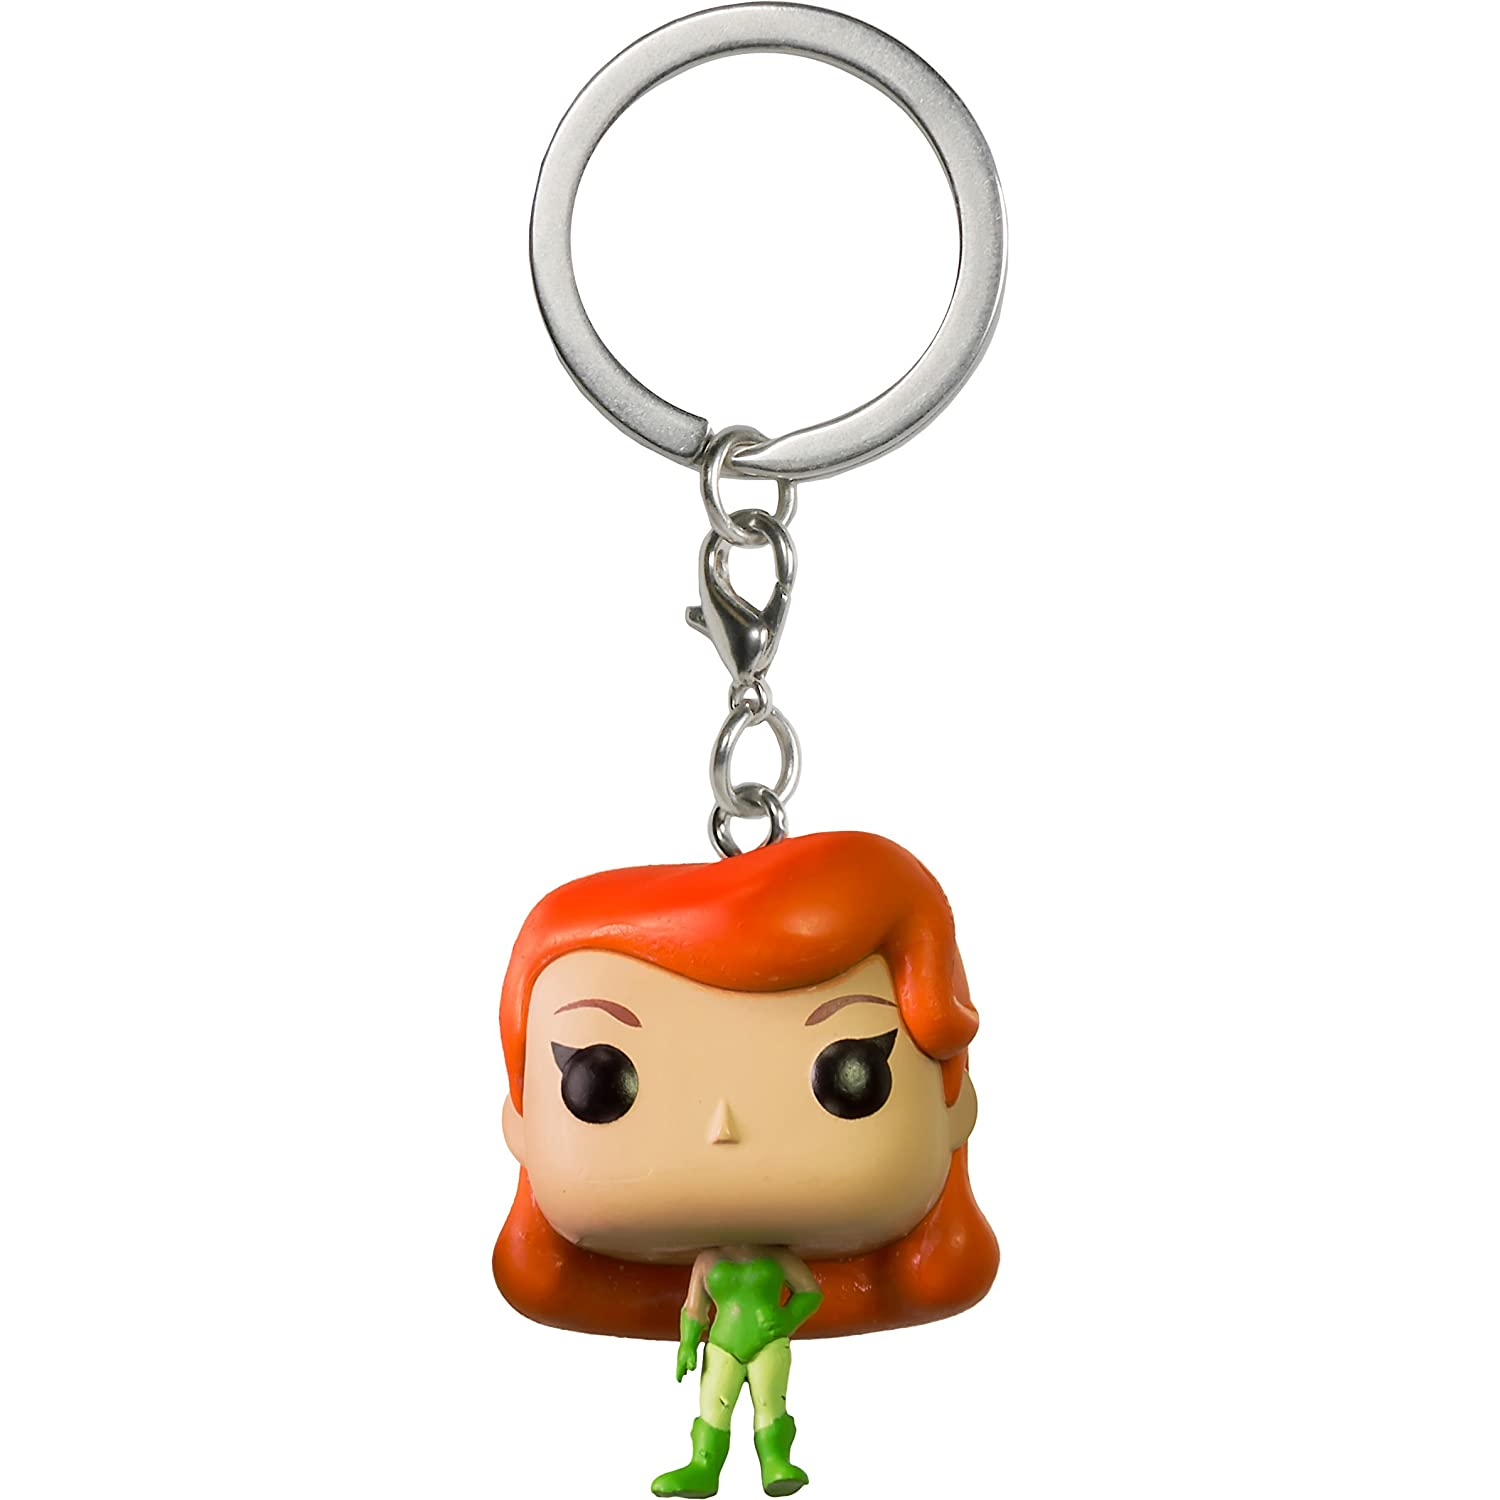 Poison Ivy: Funko Mystery Pocket POP! x Batman The Animated Series Mini-Figural Keychain (21131)